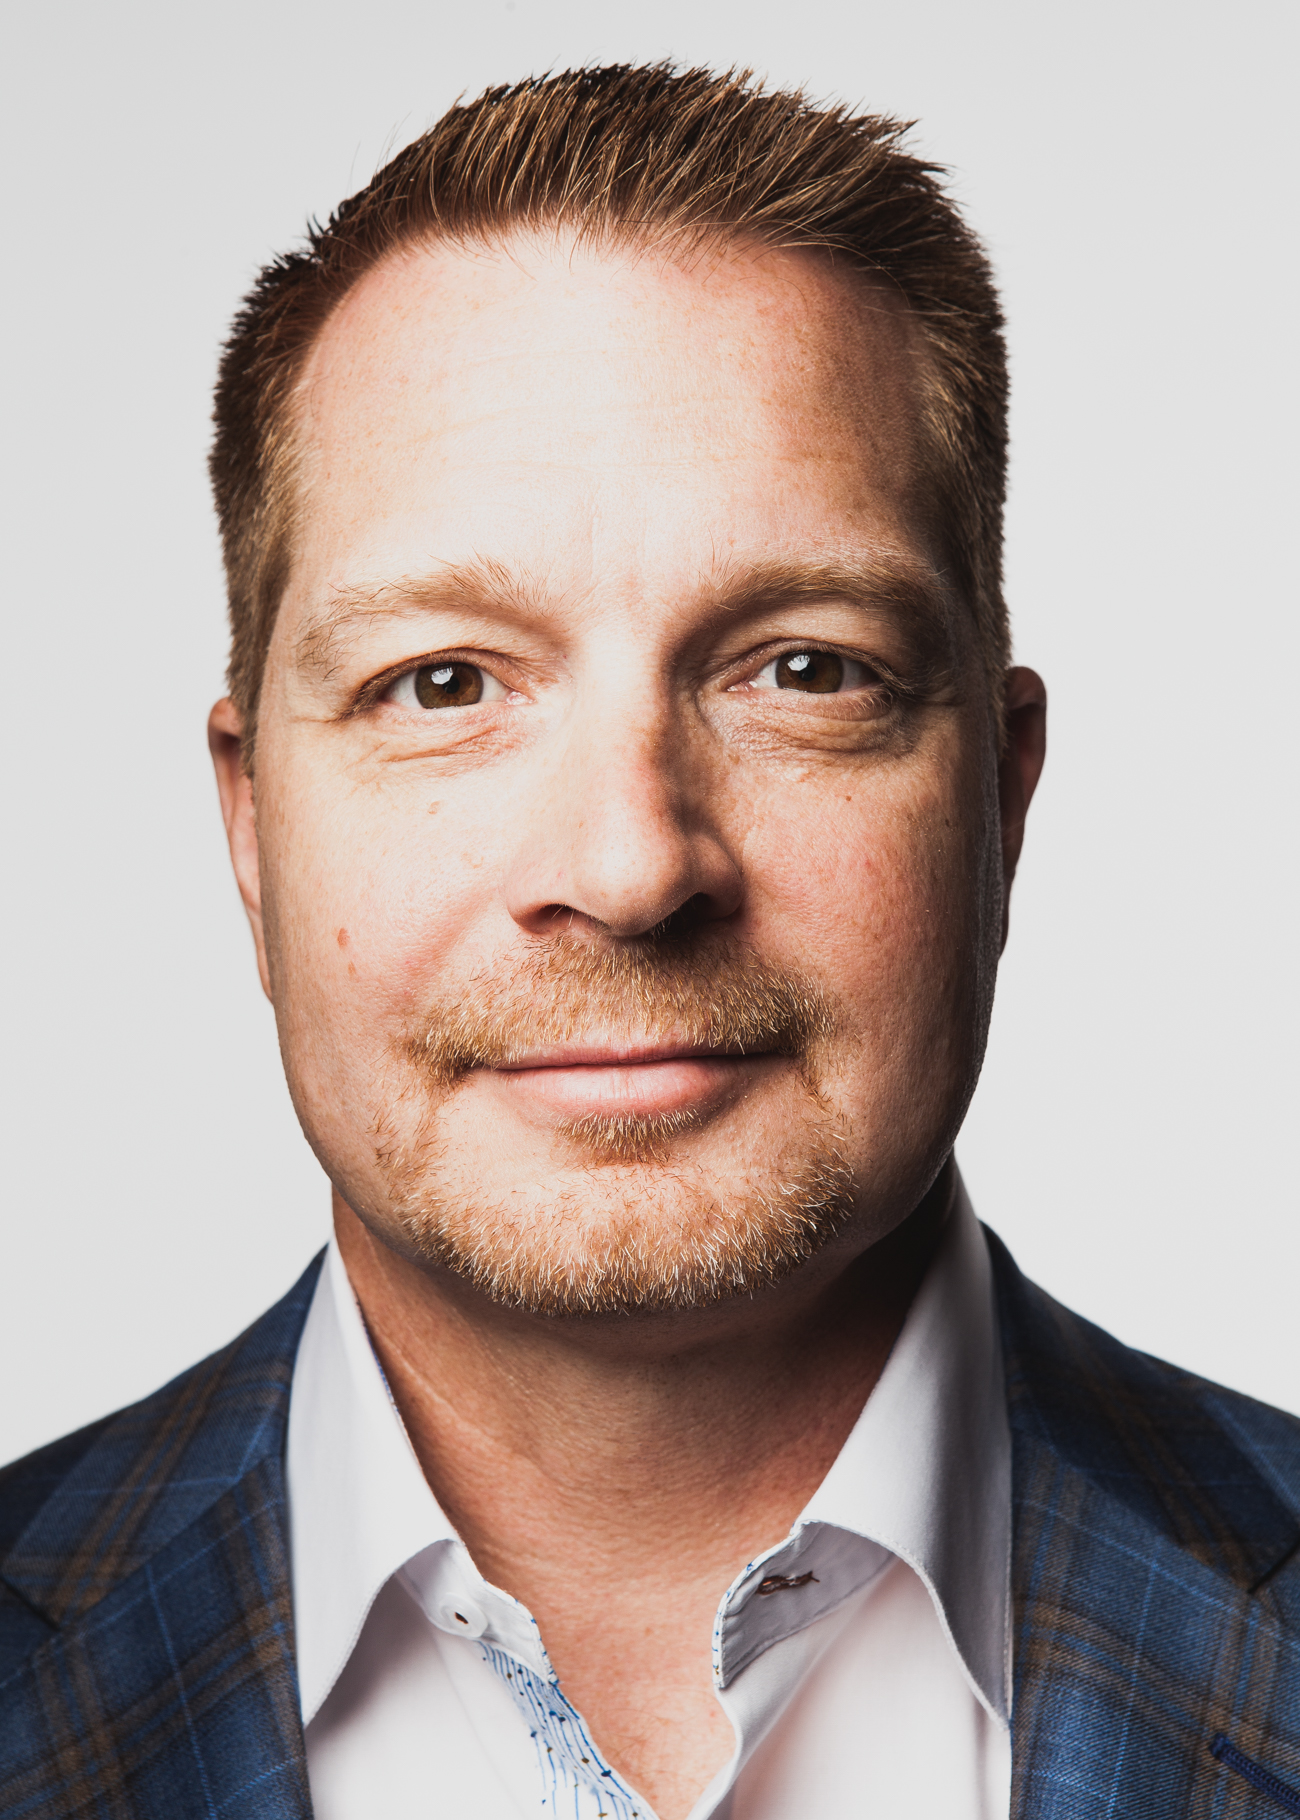 George Kurtz, co-founder and chief executive officer of CrowdStrike